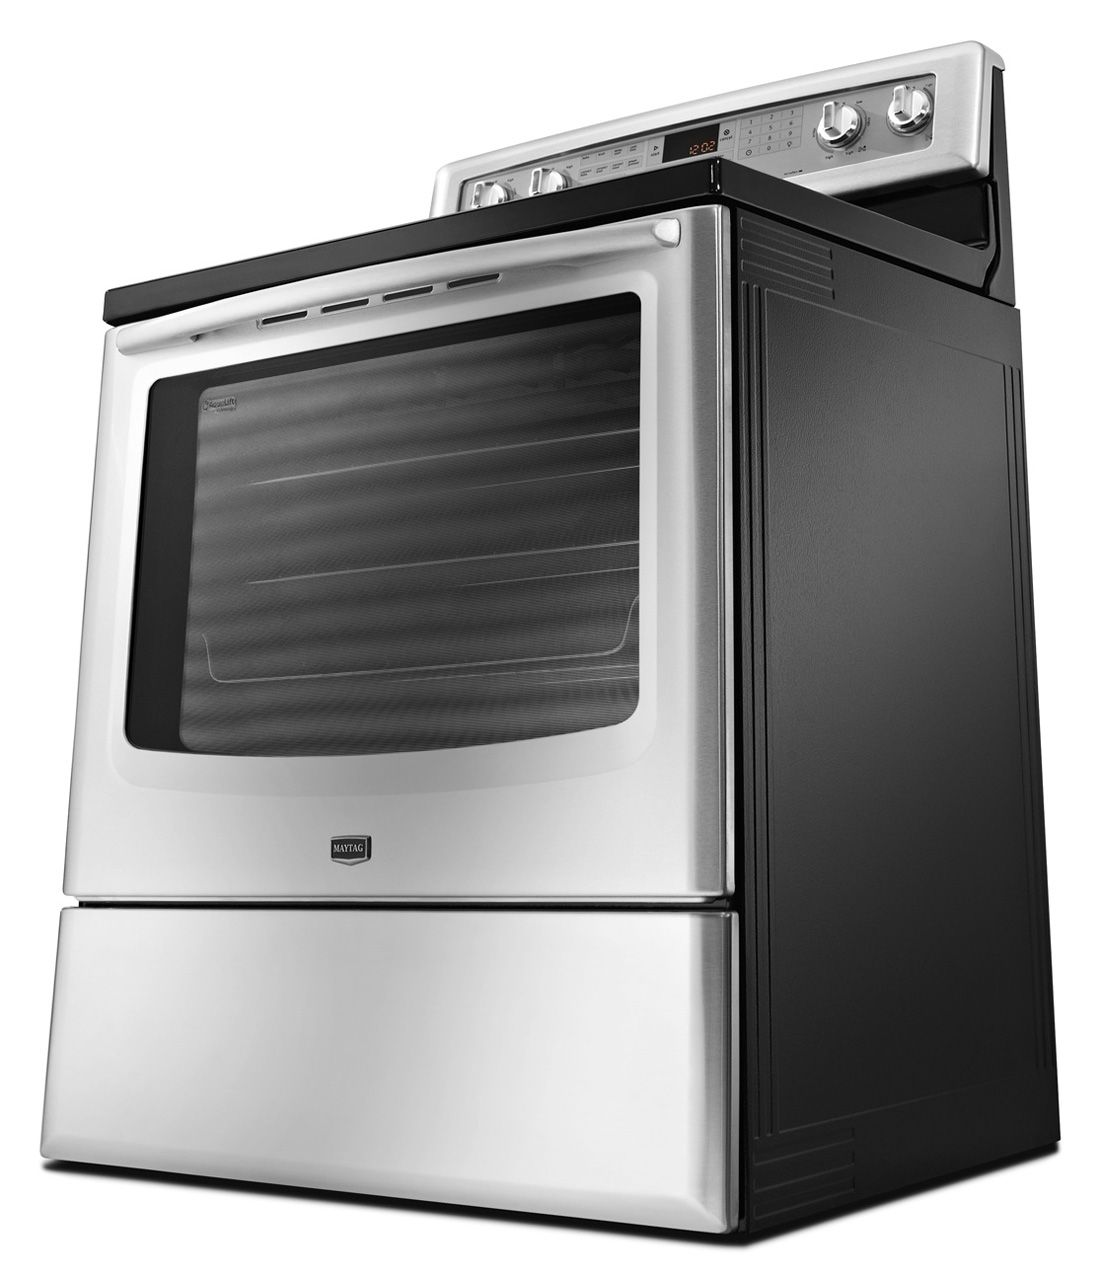 Maytag 6.2 cu. ft. Electric Range w/ Speed Heat™ Element - White